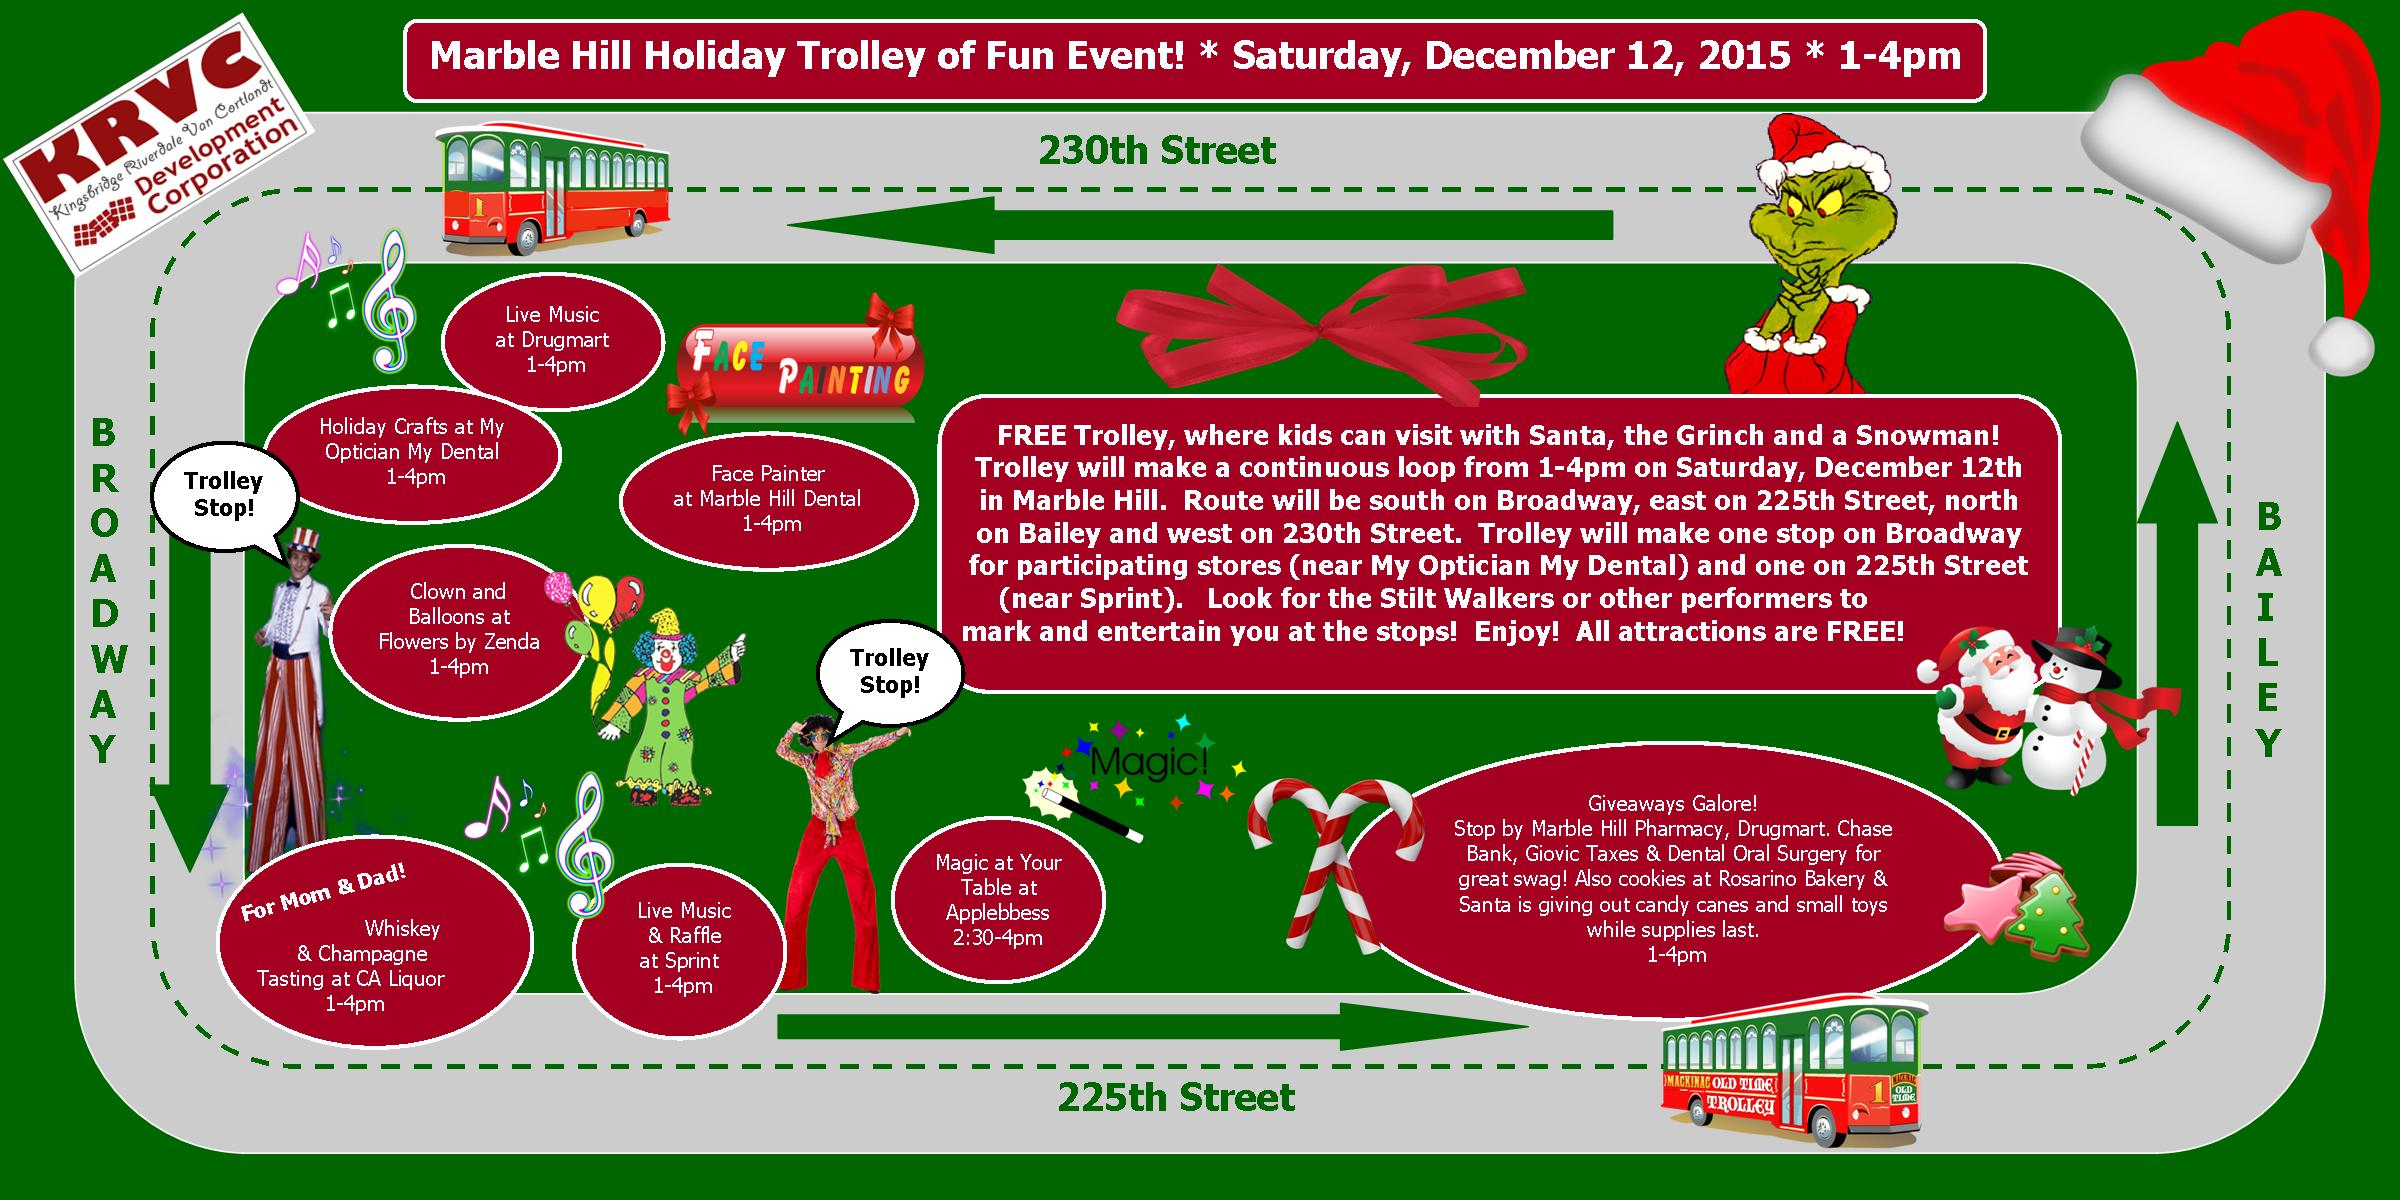 http://www.krvcdc.org/sites/default/files/files/pages/marble_hill_trolley_event_handout.jpg